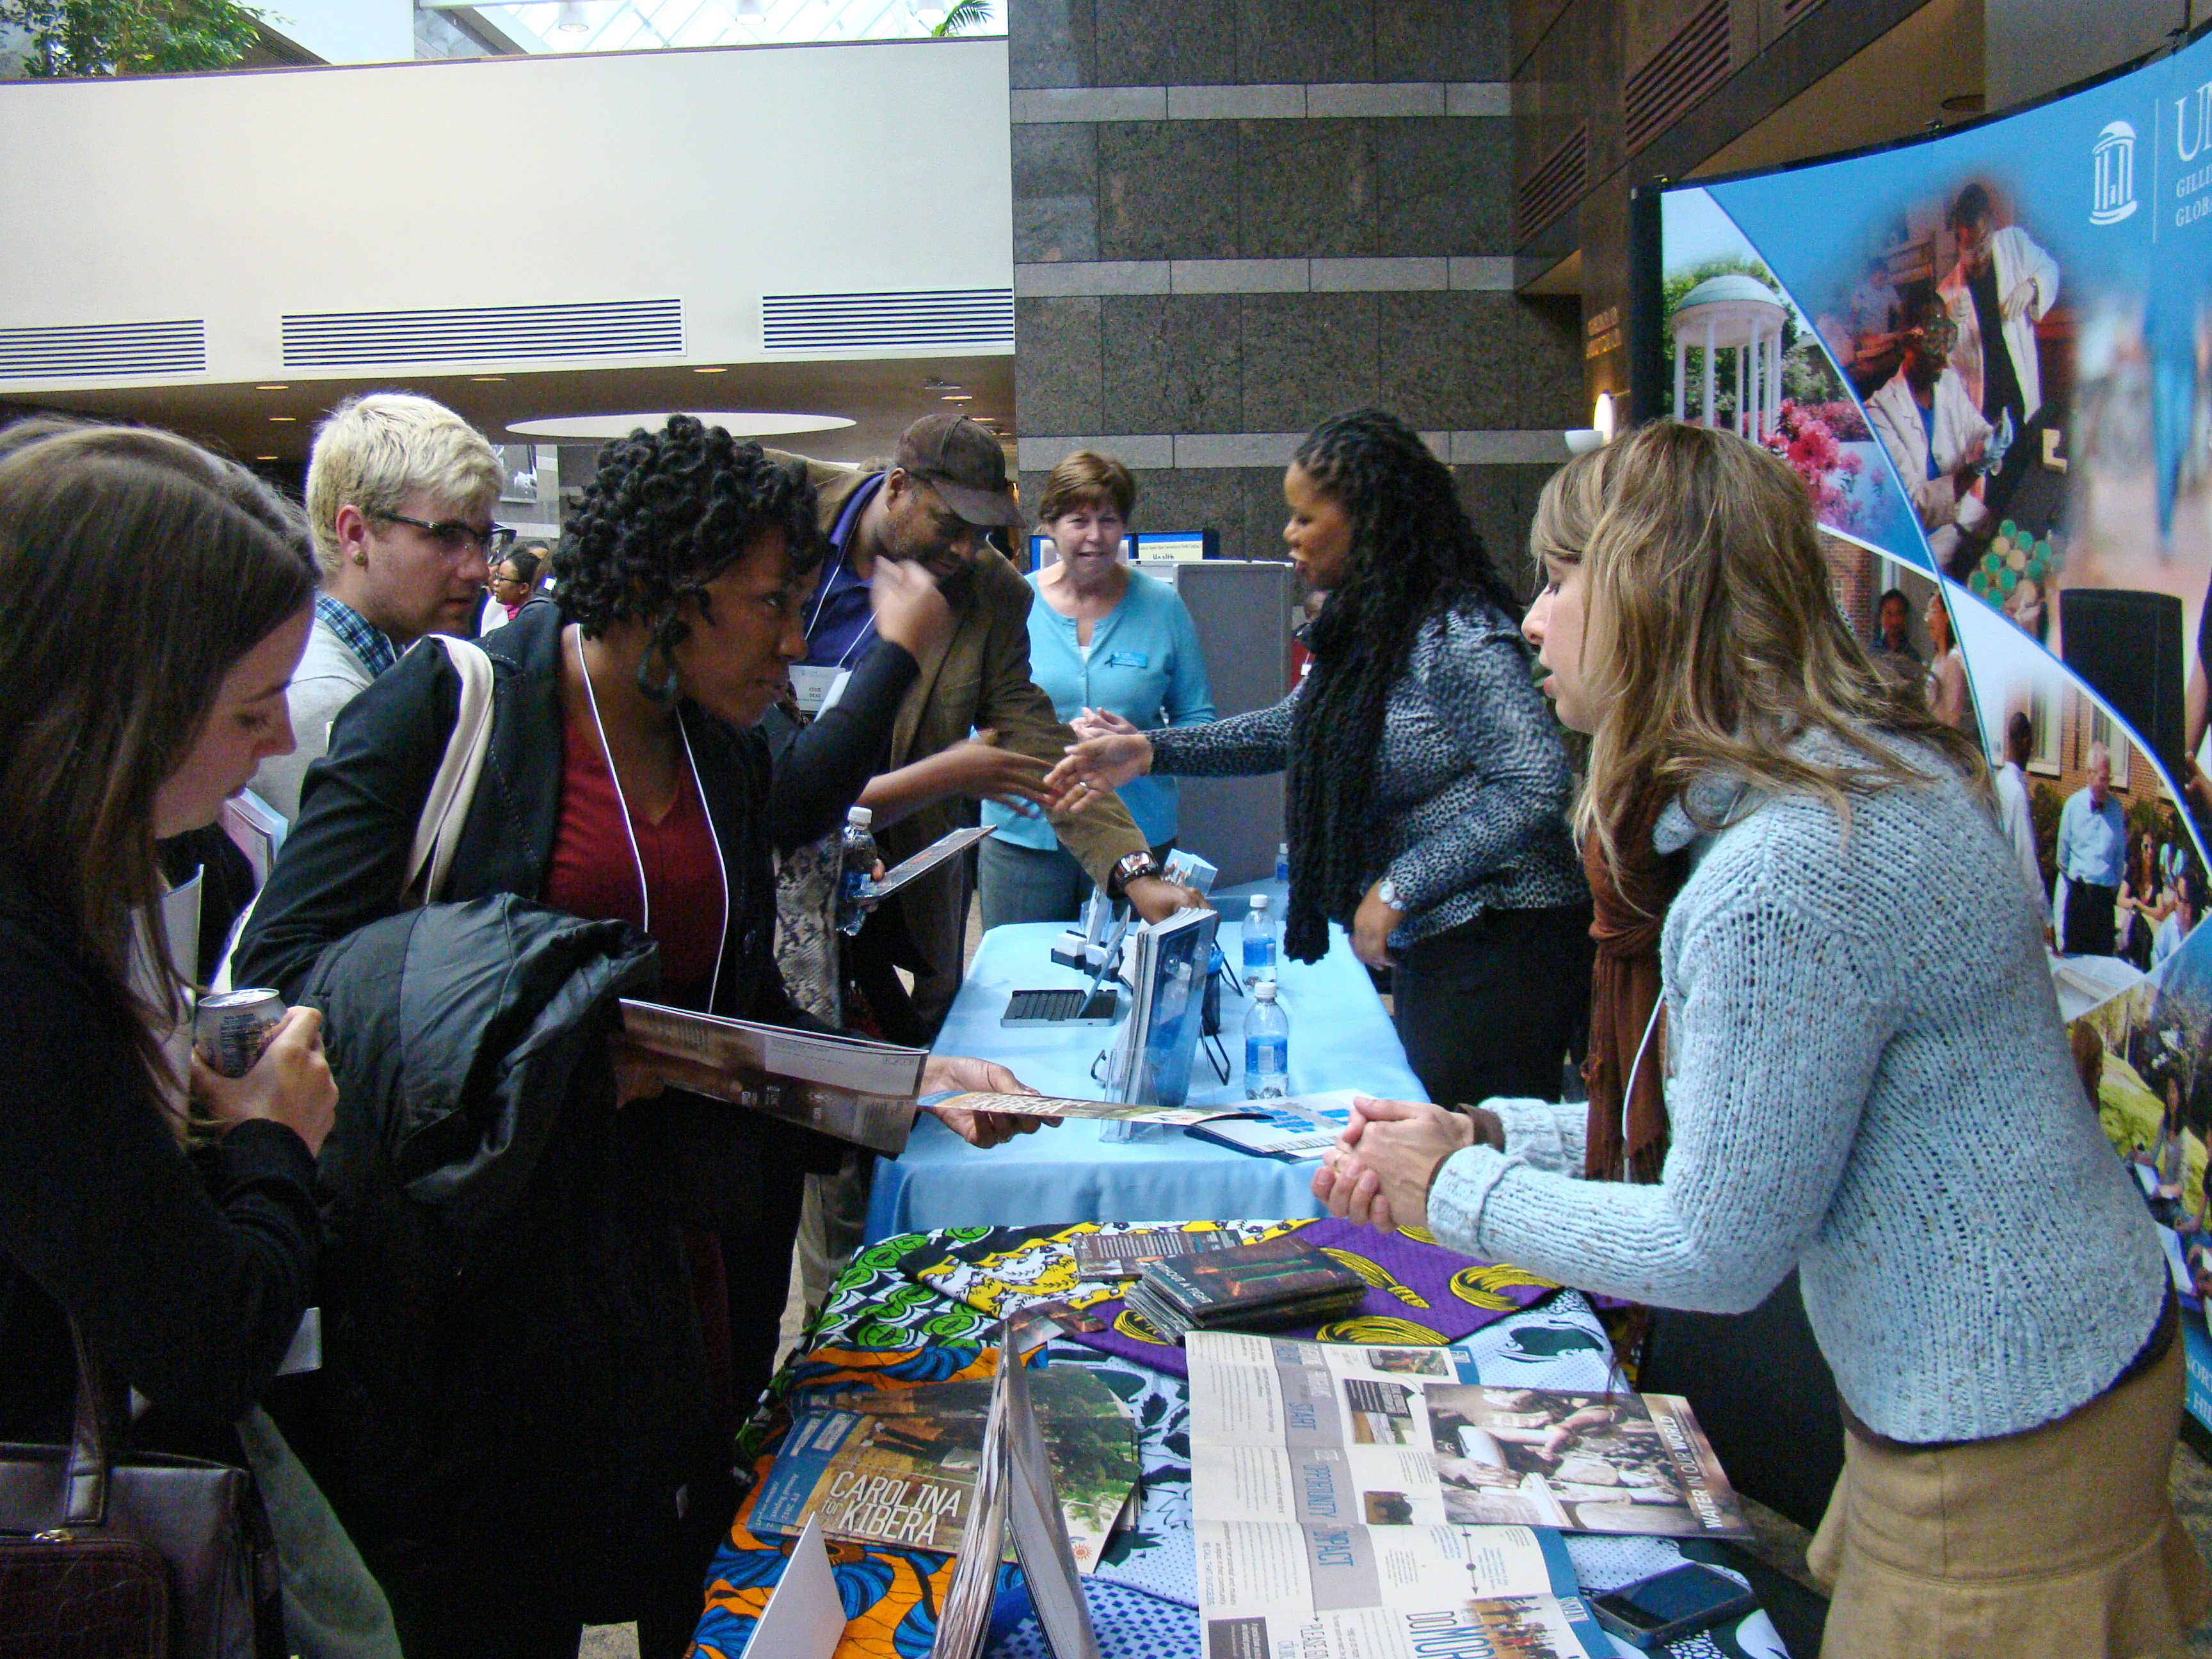 Participants at the 2016 Minority Health Conference examine materials from related organizations at UNC.